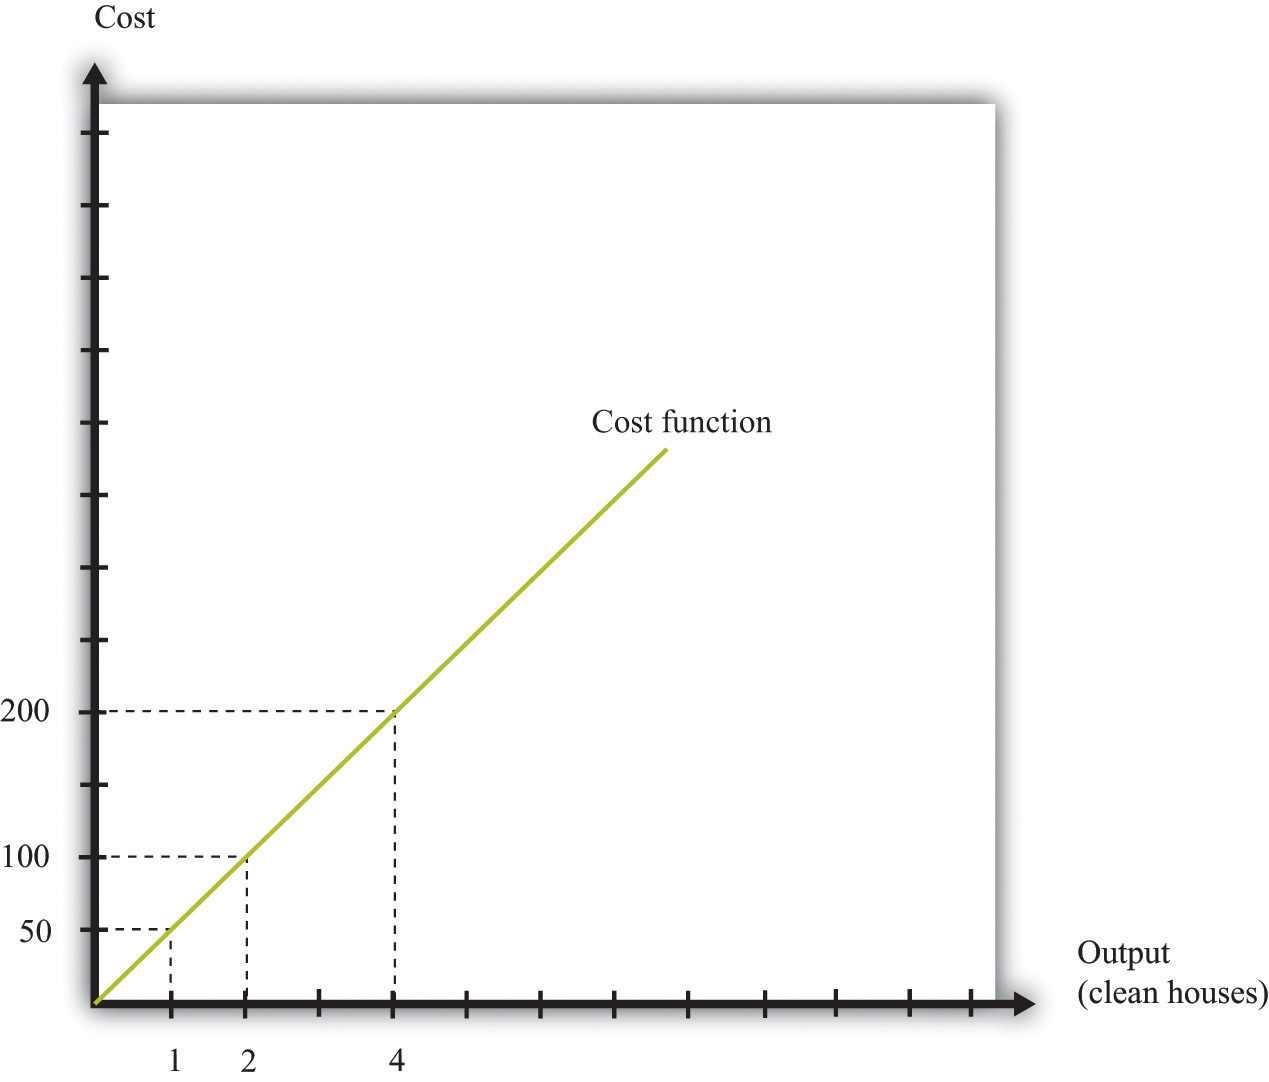 Cost Of Producing Hydrogen From Natural Gas Vs Electrolysis